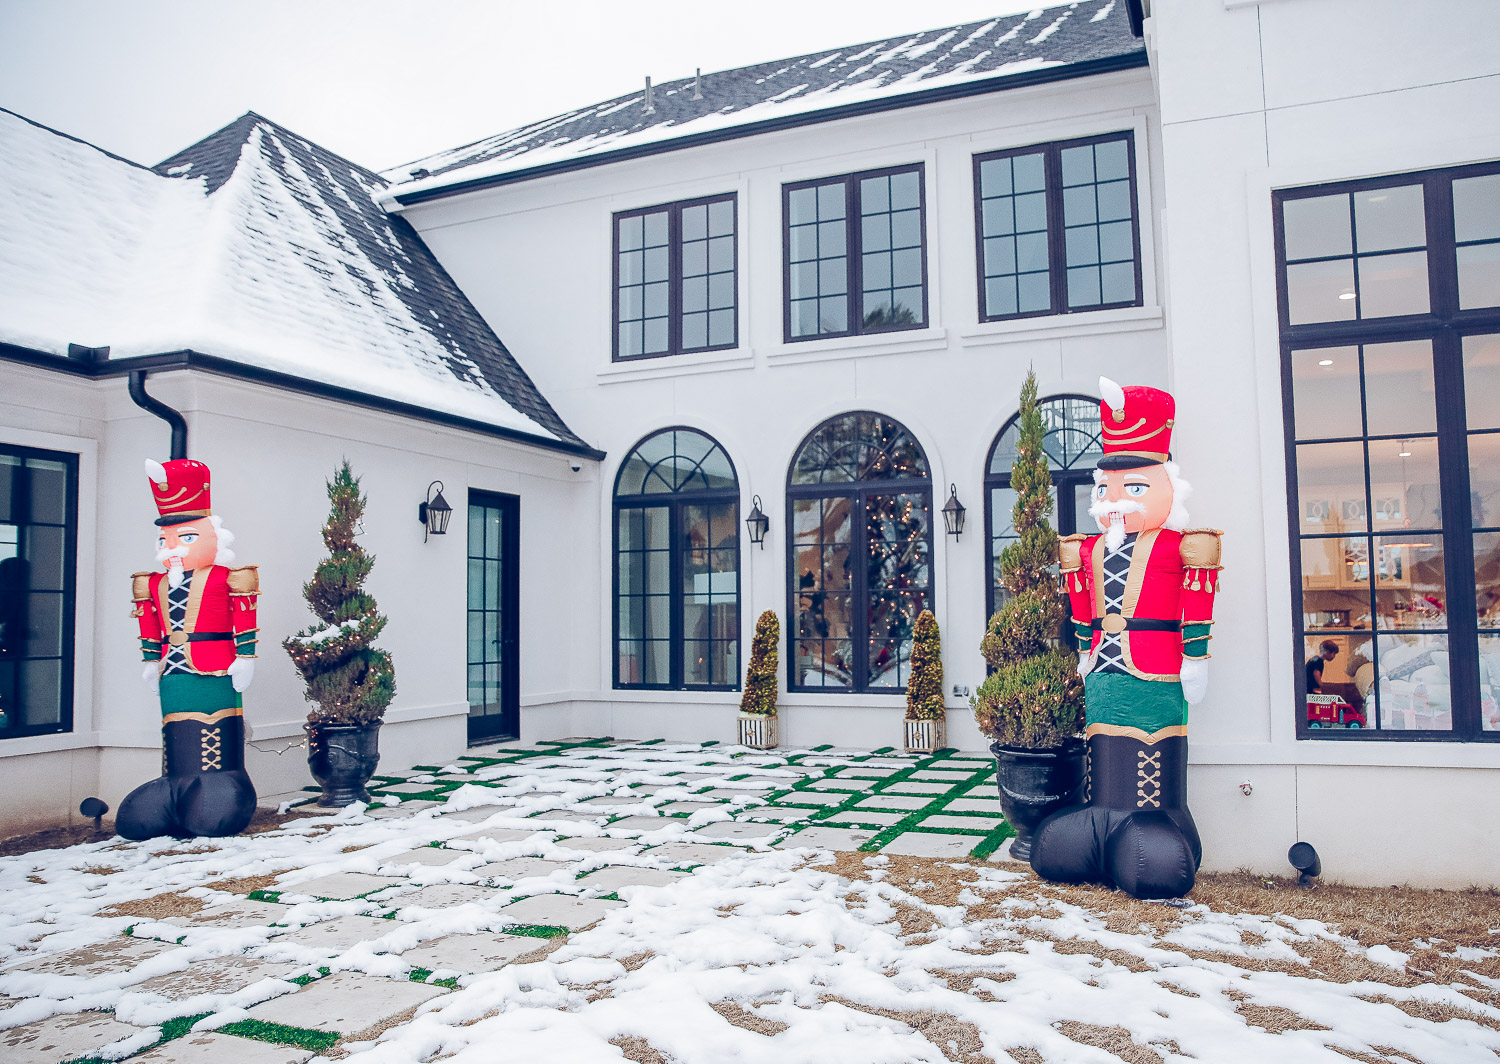 Christmas outdoor decorations home depot, emily gemma home, christmas wreaths on gates with bow, blow up nutcrackers, |Holiday Home Decor by popular US life and style blog, The Sweetest Thing: image of a backyard decorated with topiary trees, white lights, and inflatable nutcrackers.